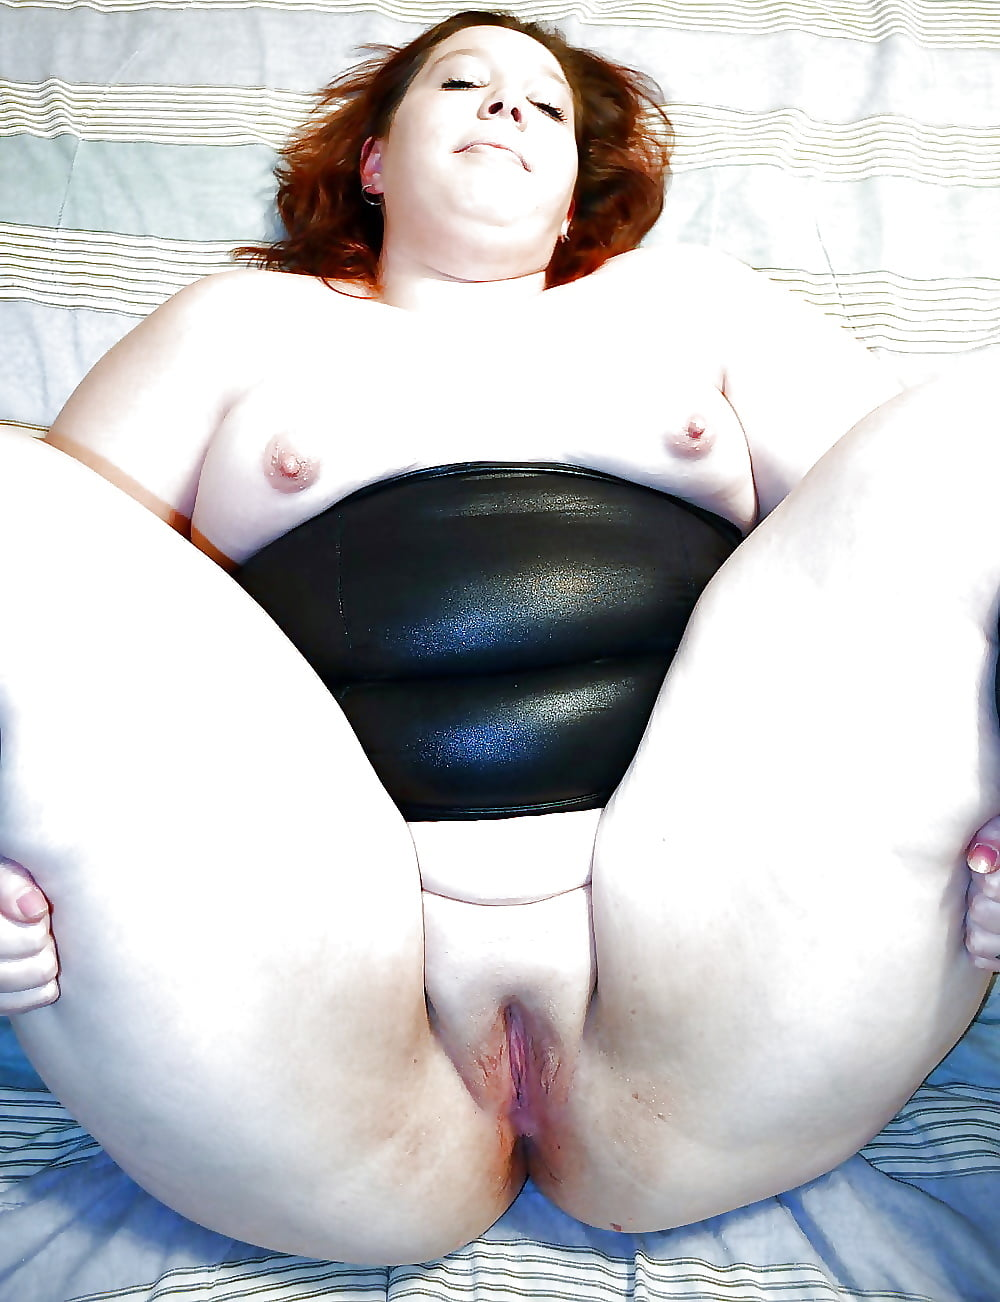 bbw-talitha-pussy-girl-ass-sweat-patches